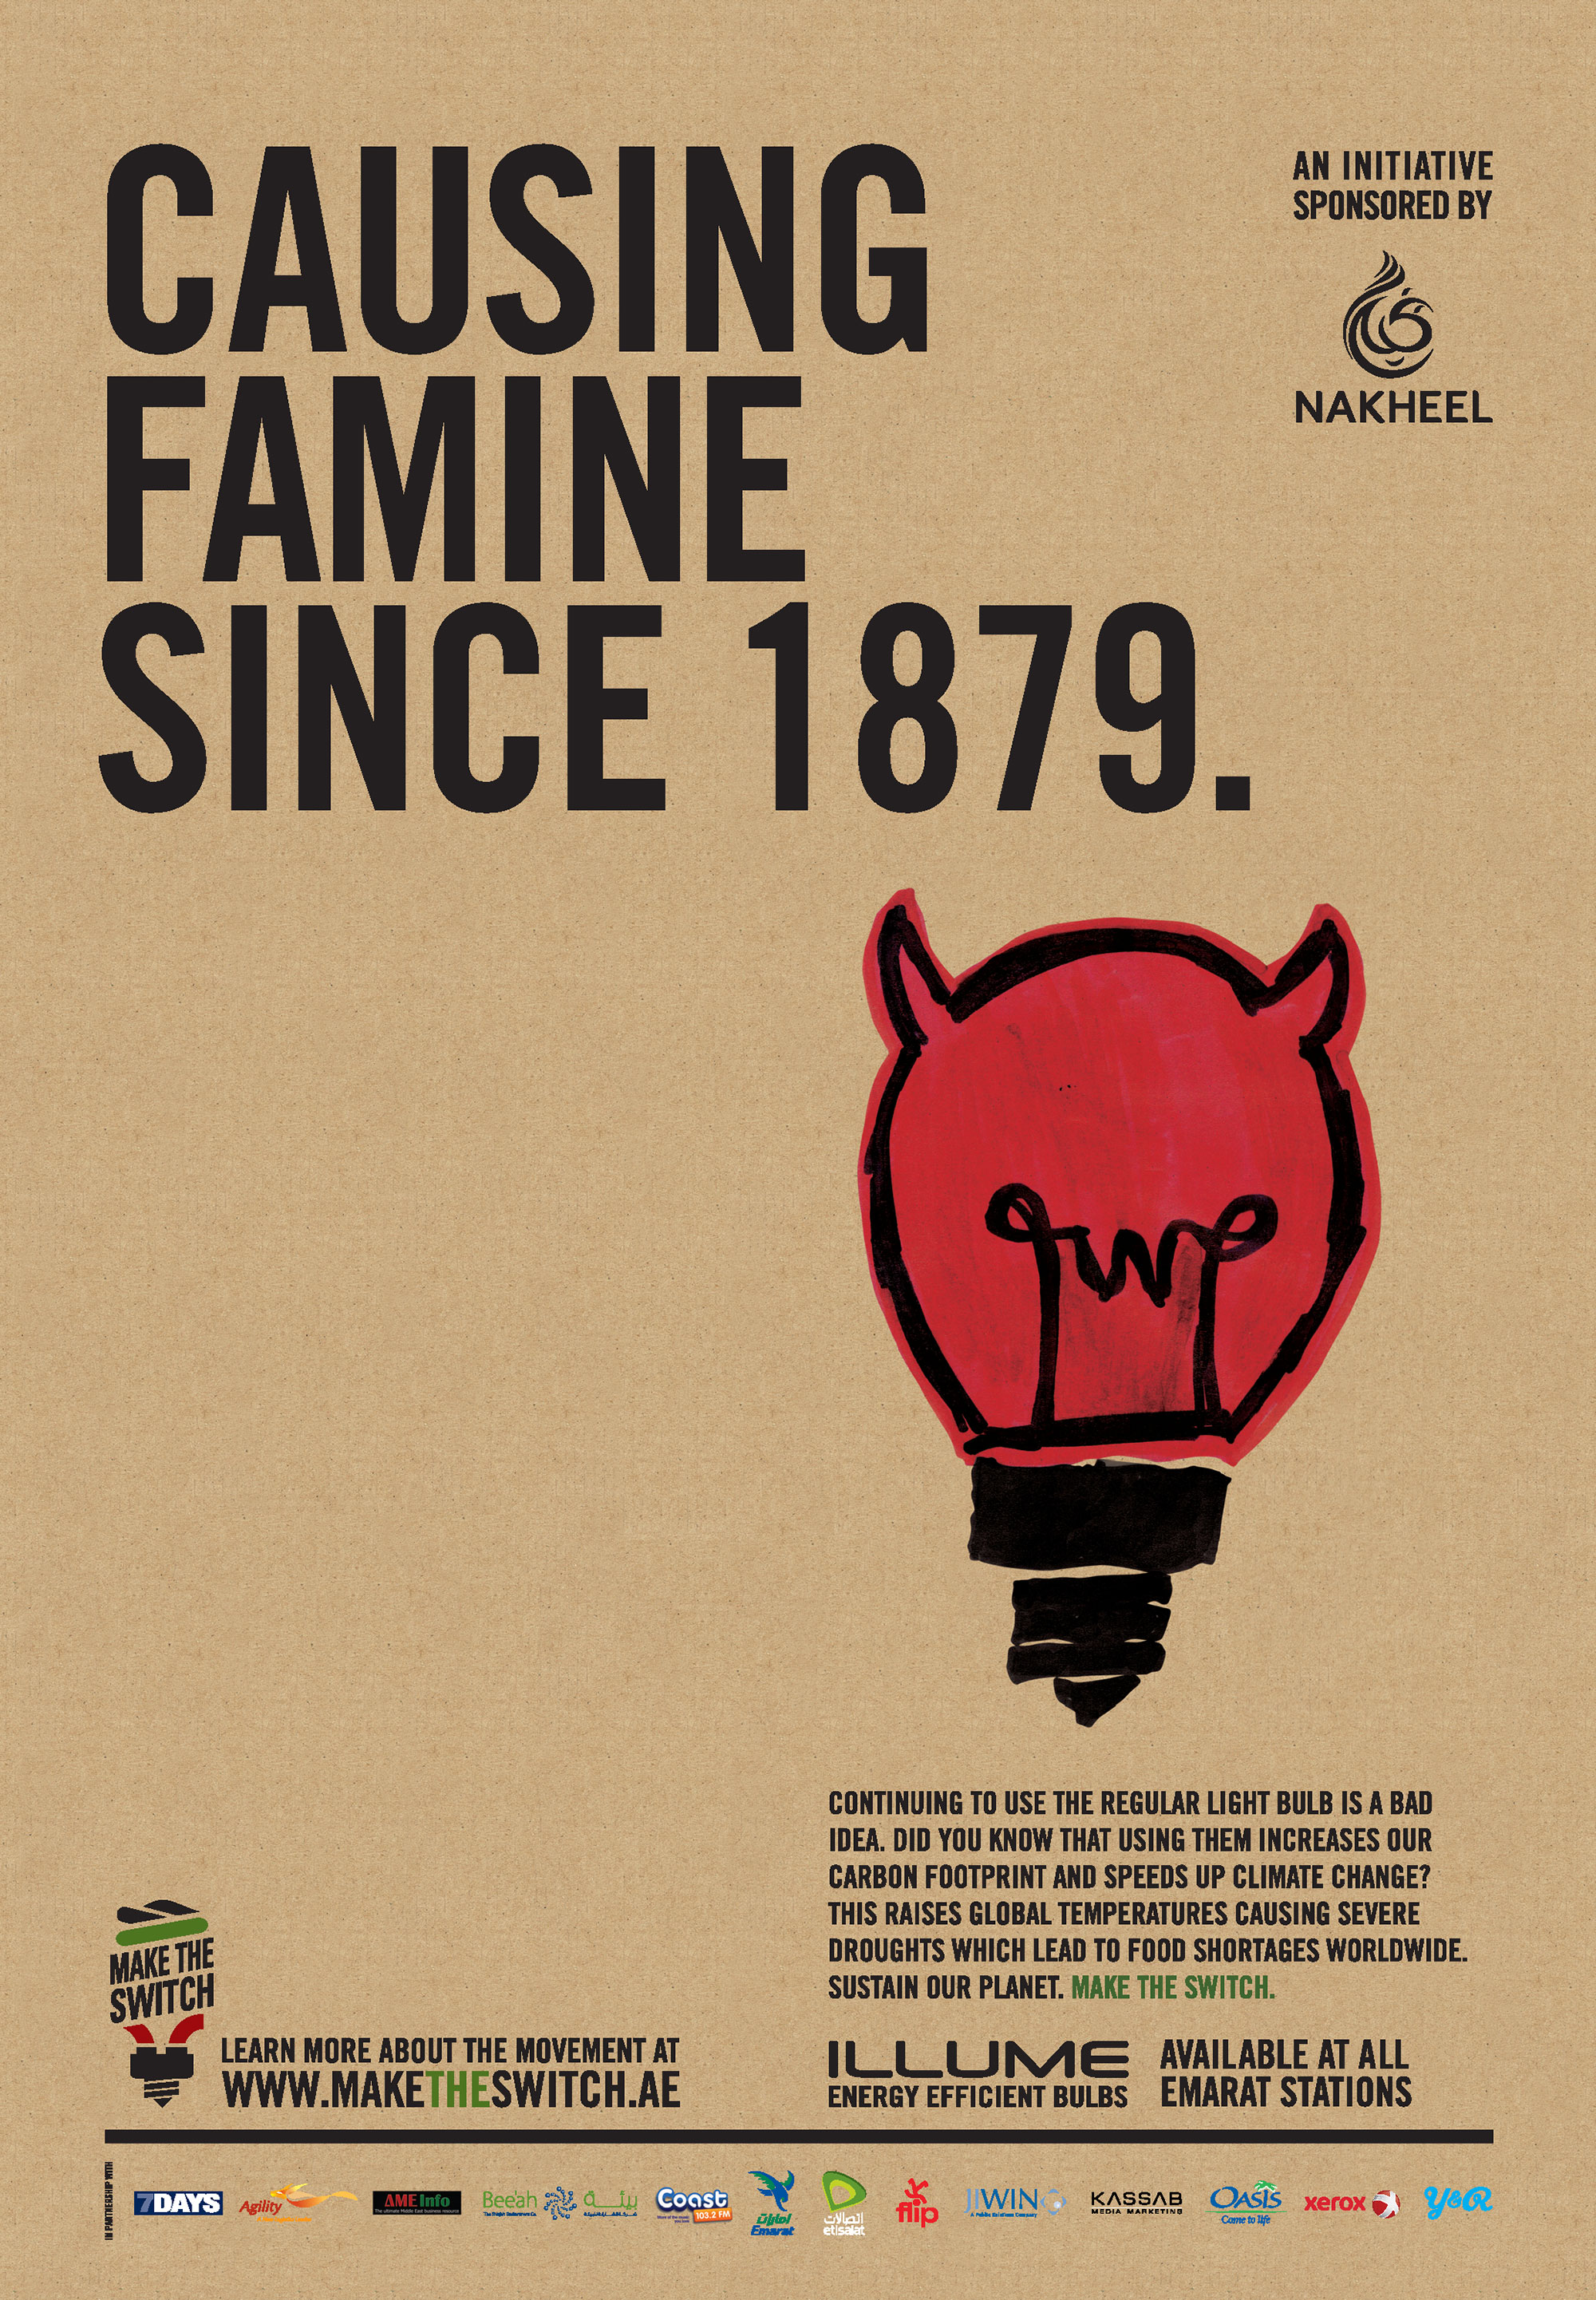 Causing famine since 1879.